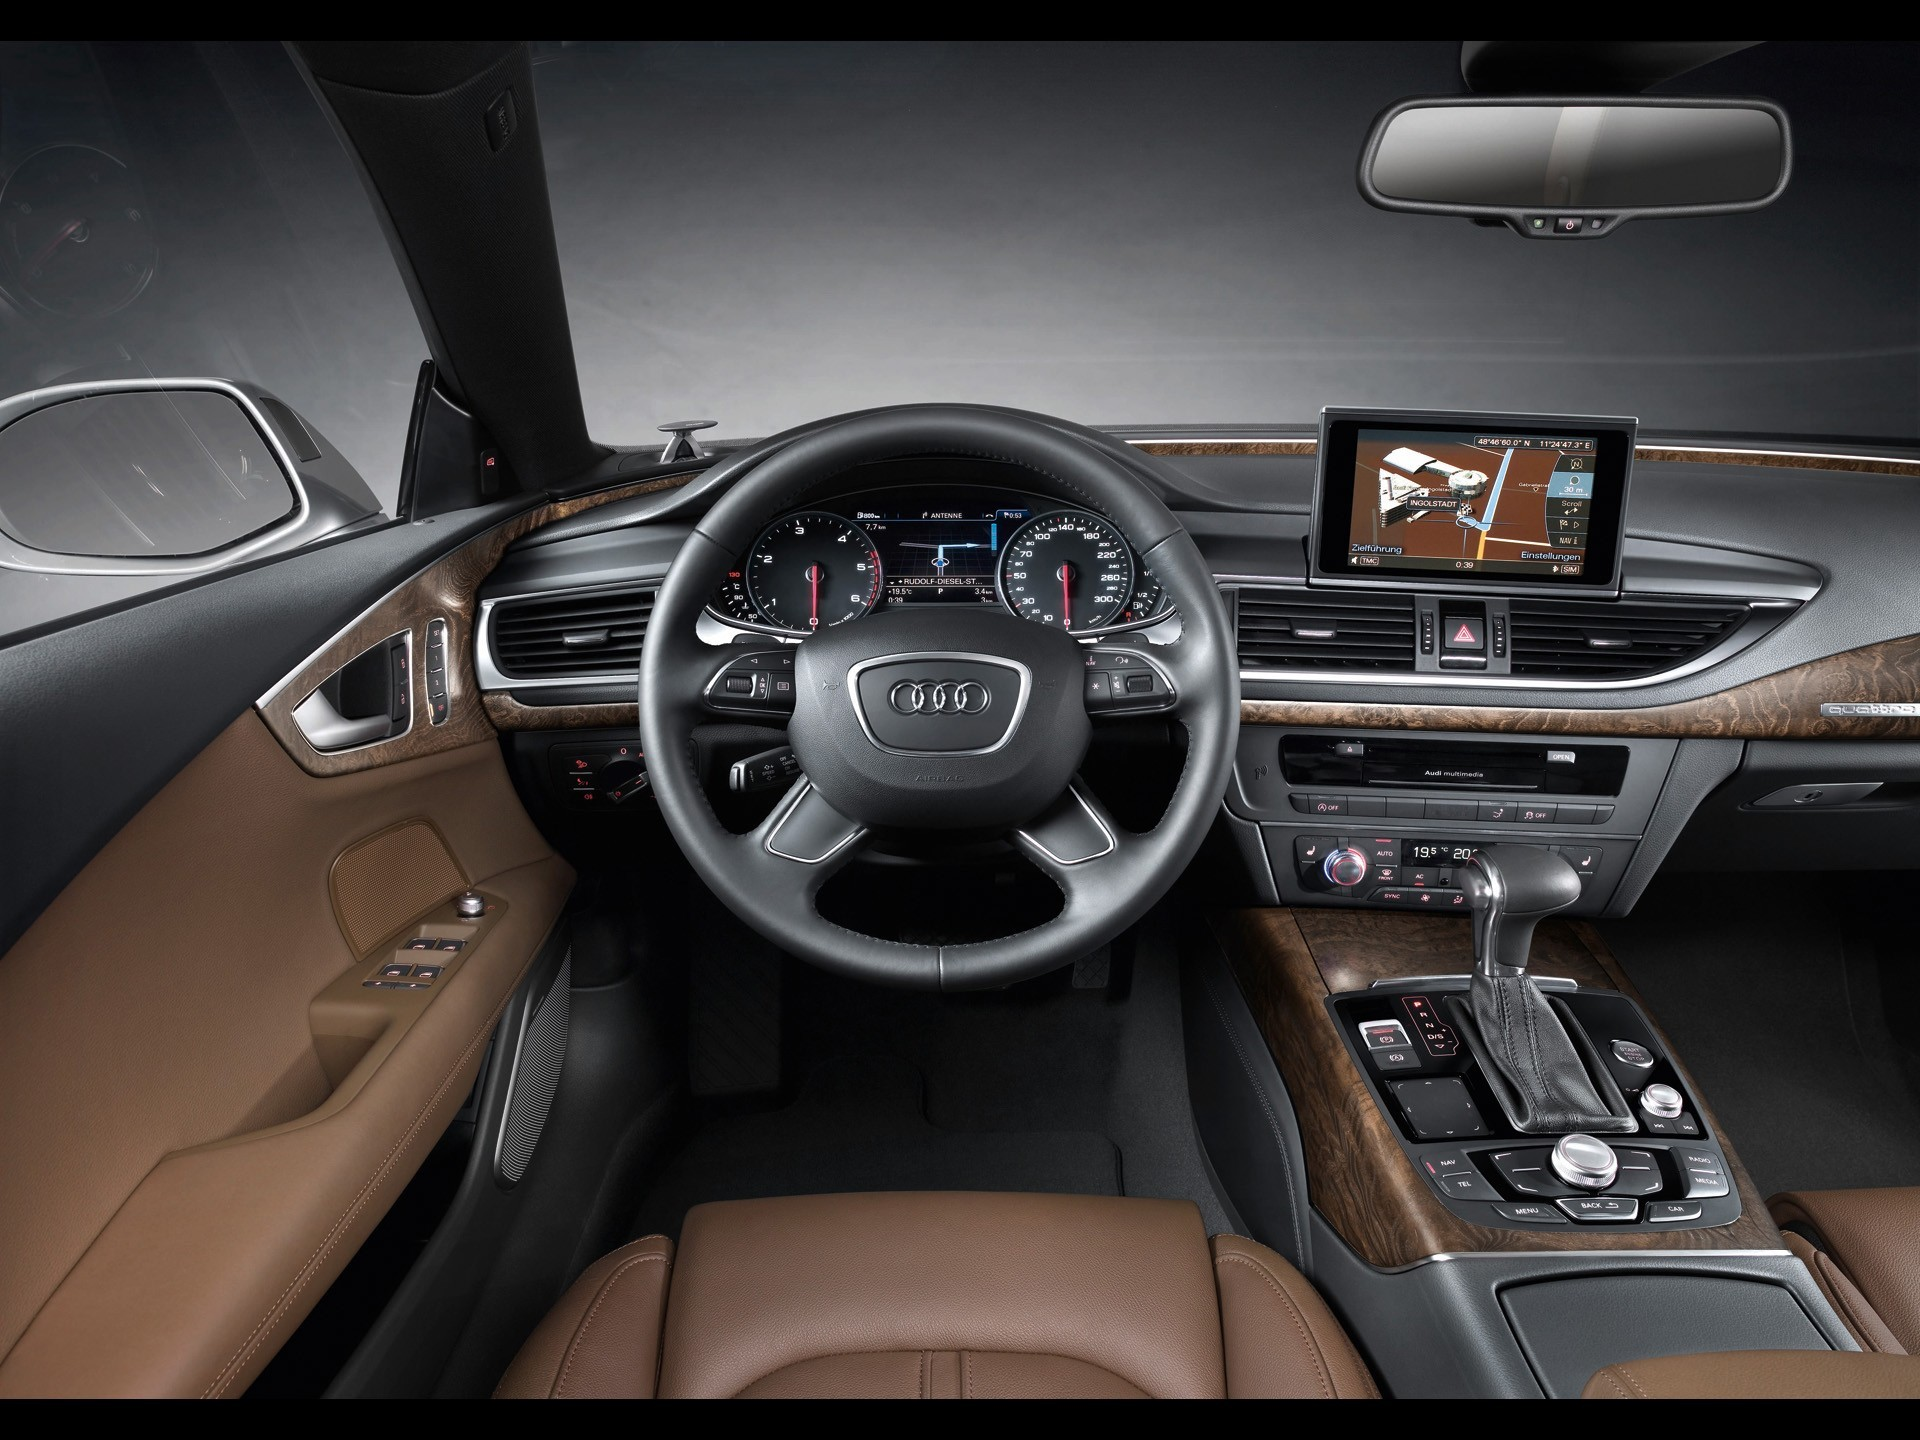 cars vehicles dashboards audi HD Wallpaper